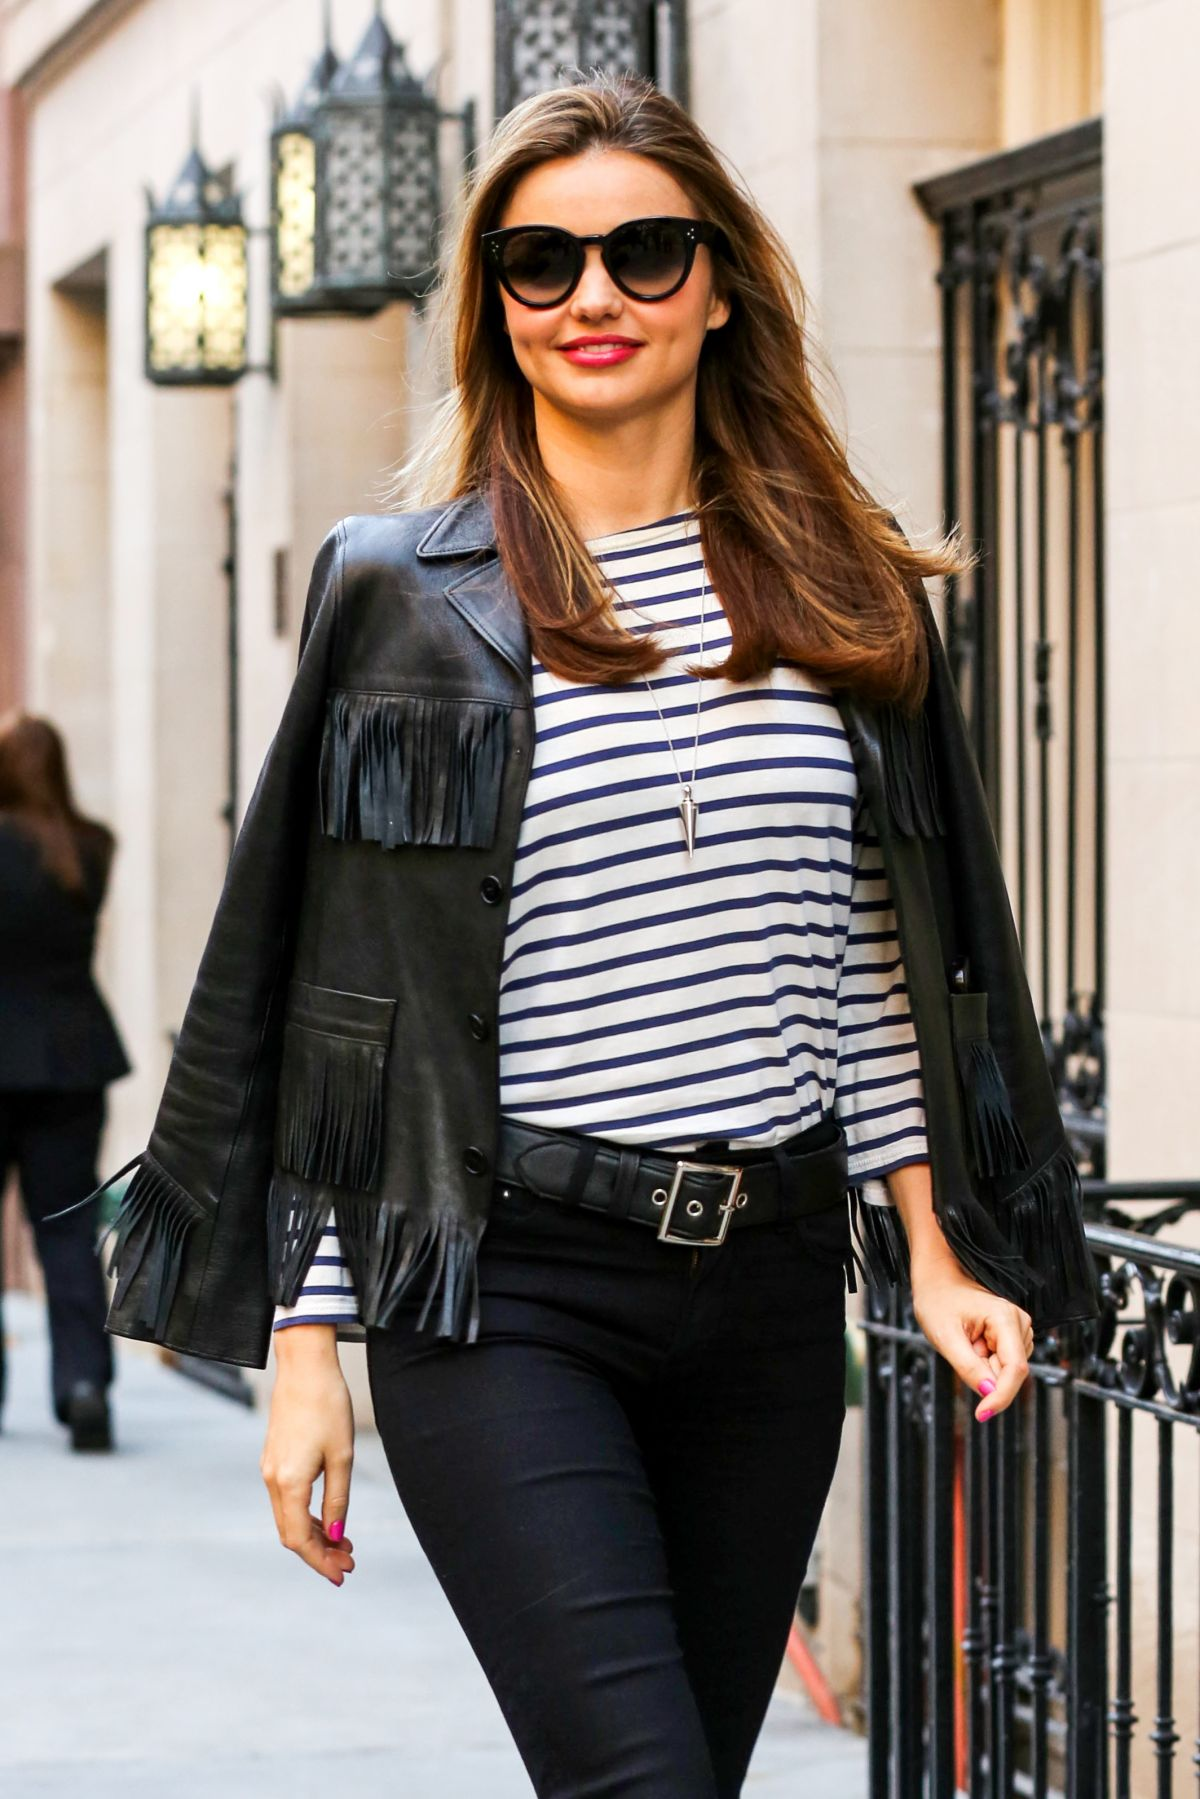 MIRANDA KERR at a Commercial Photoshoot in New York